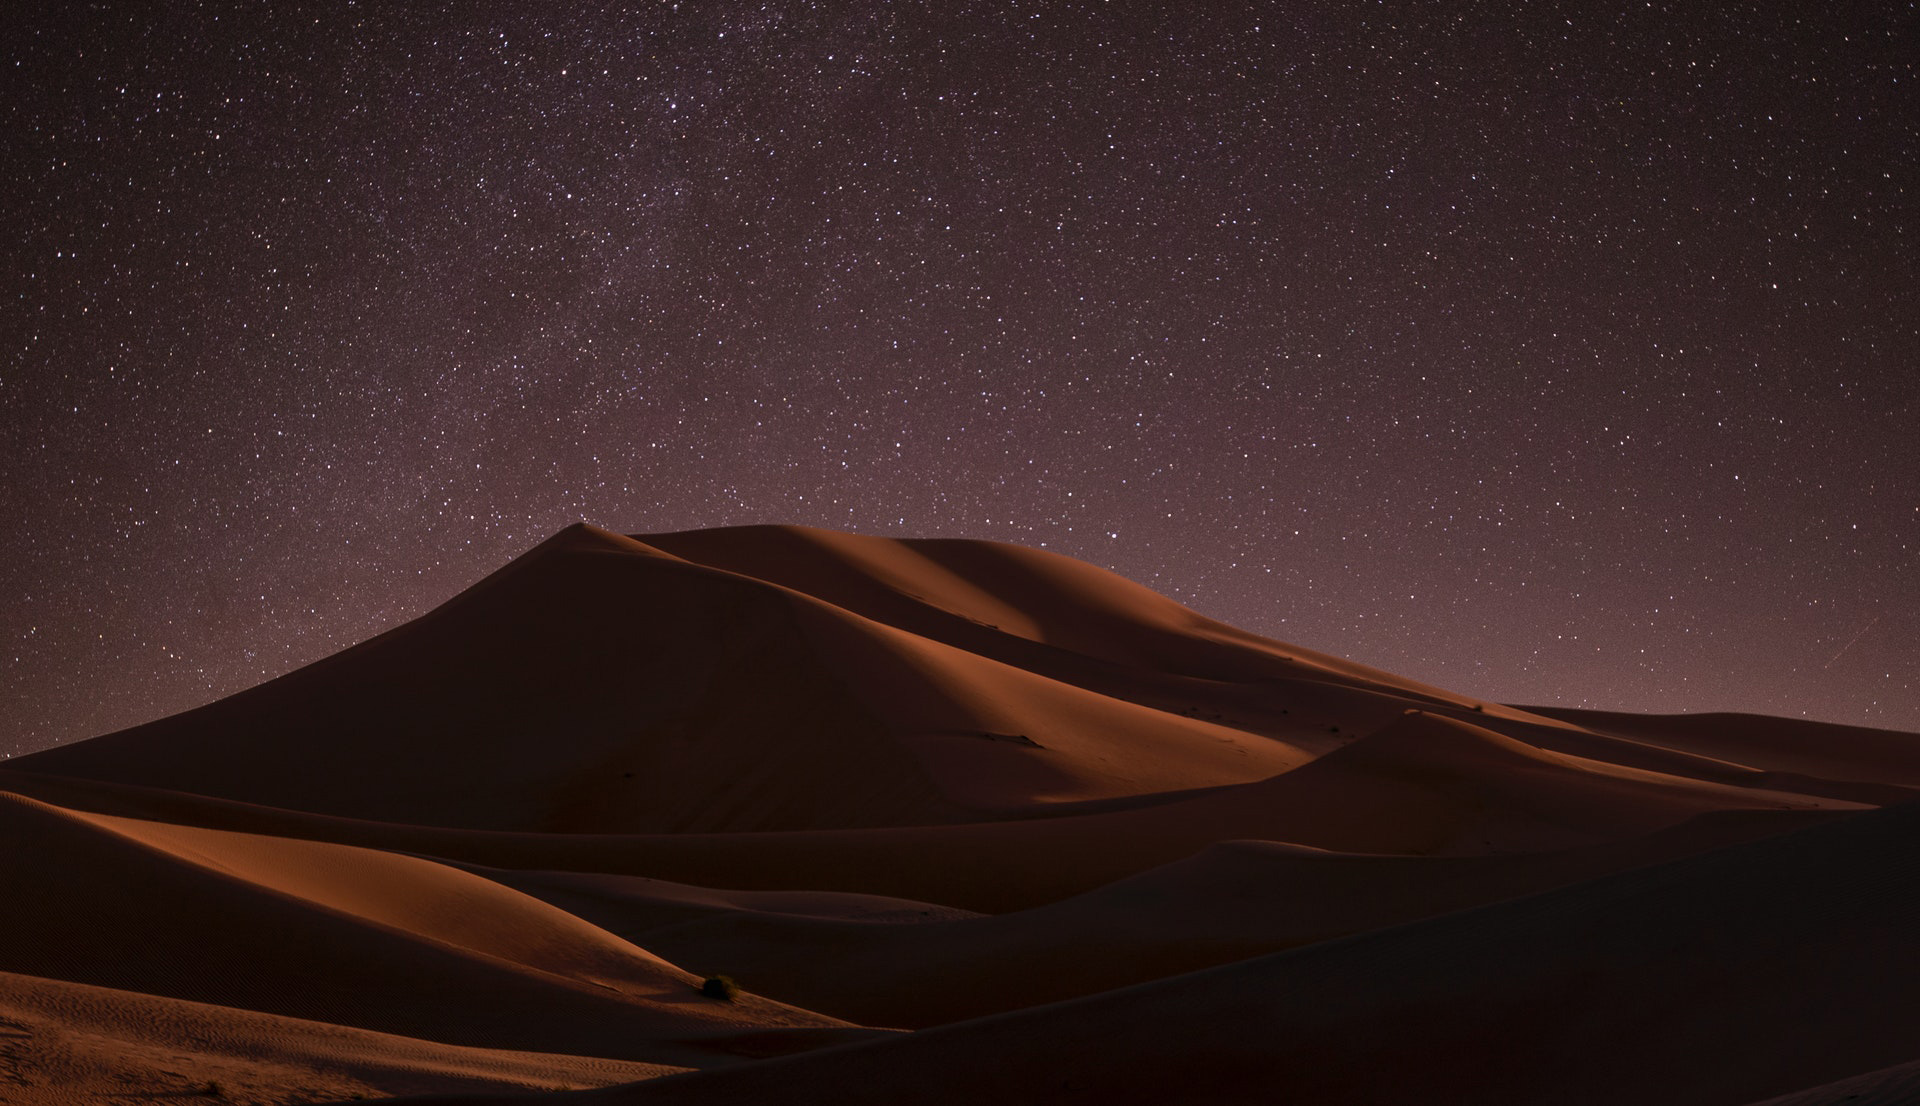 Image of a sand dune in a desert with a night sky and stars in the background